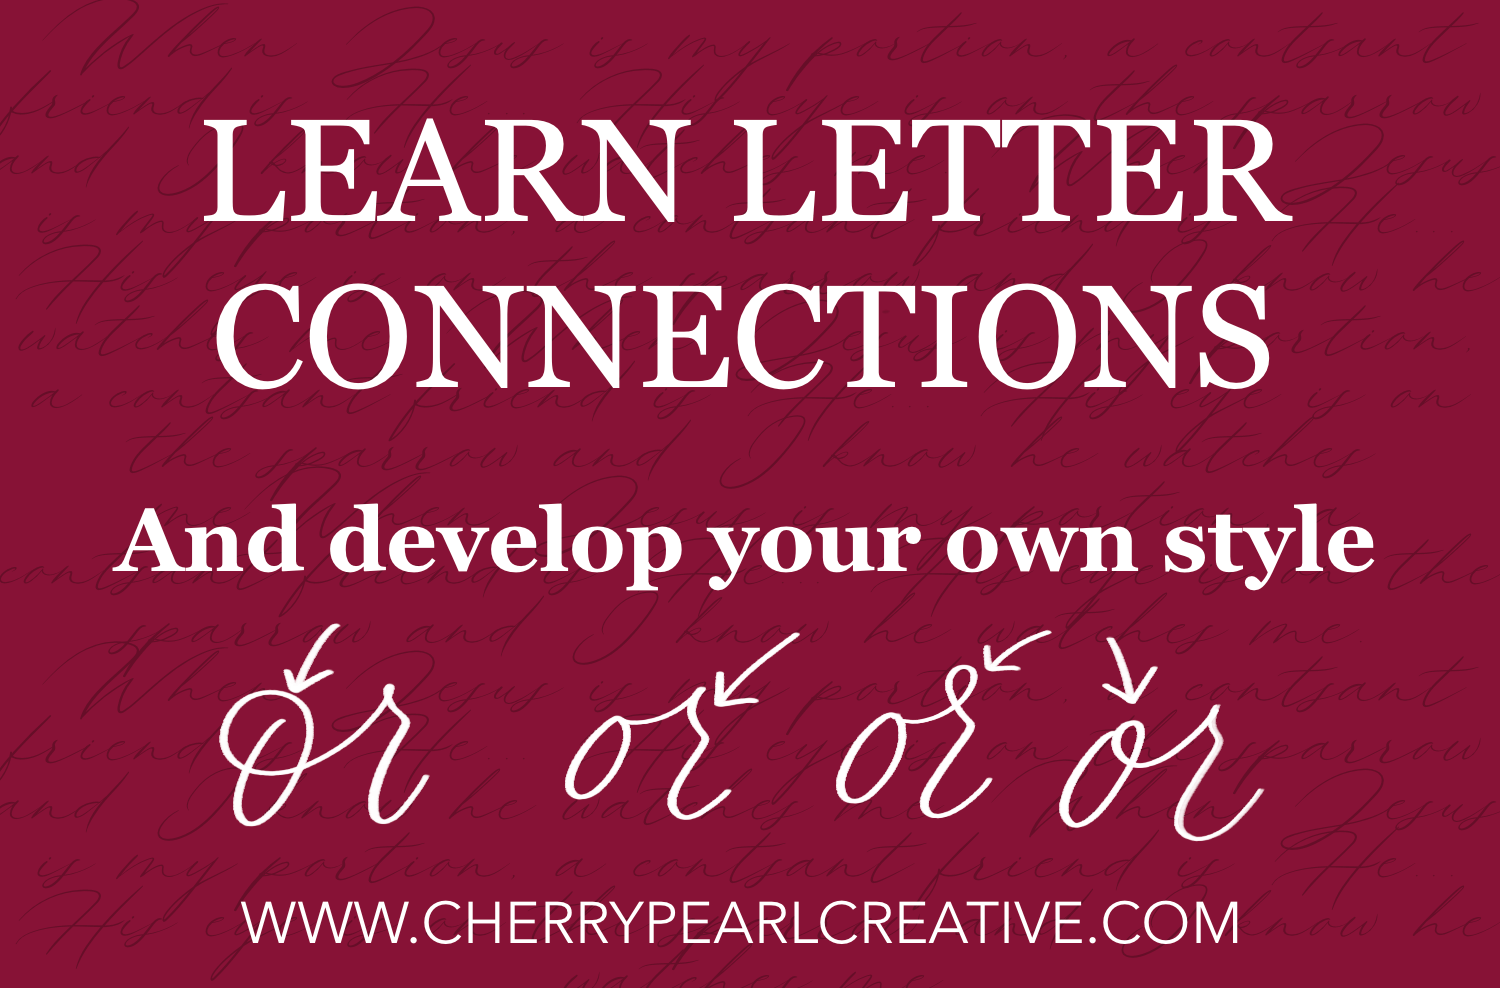 Cherry Pearl Creative - Learn to Connect the Letters in Brush Calligraphy